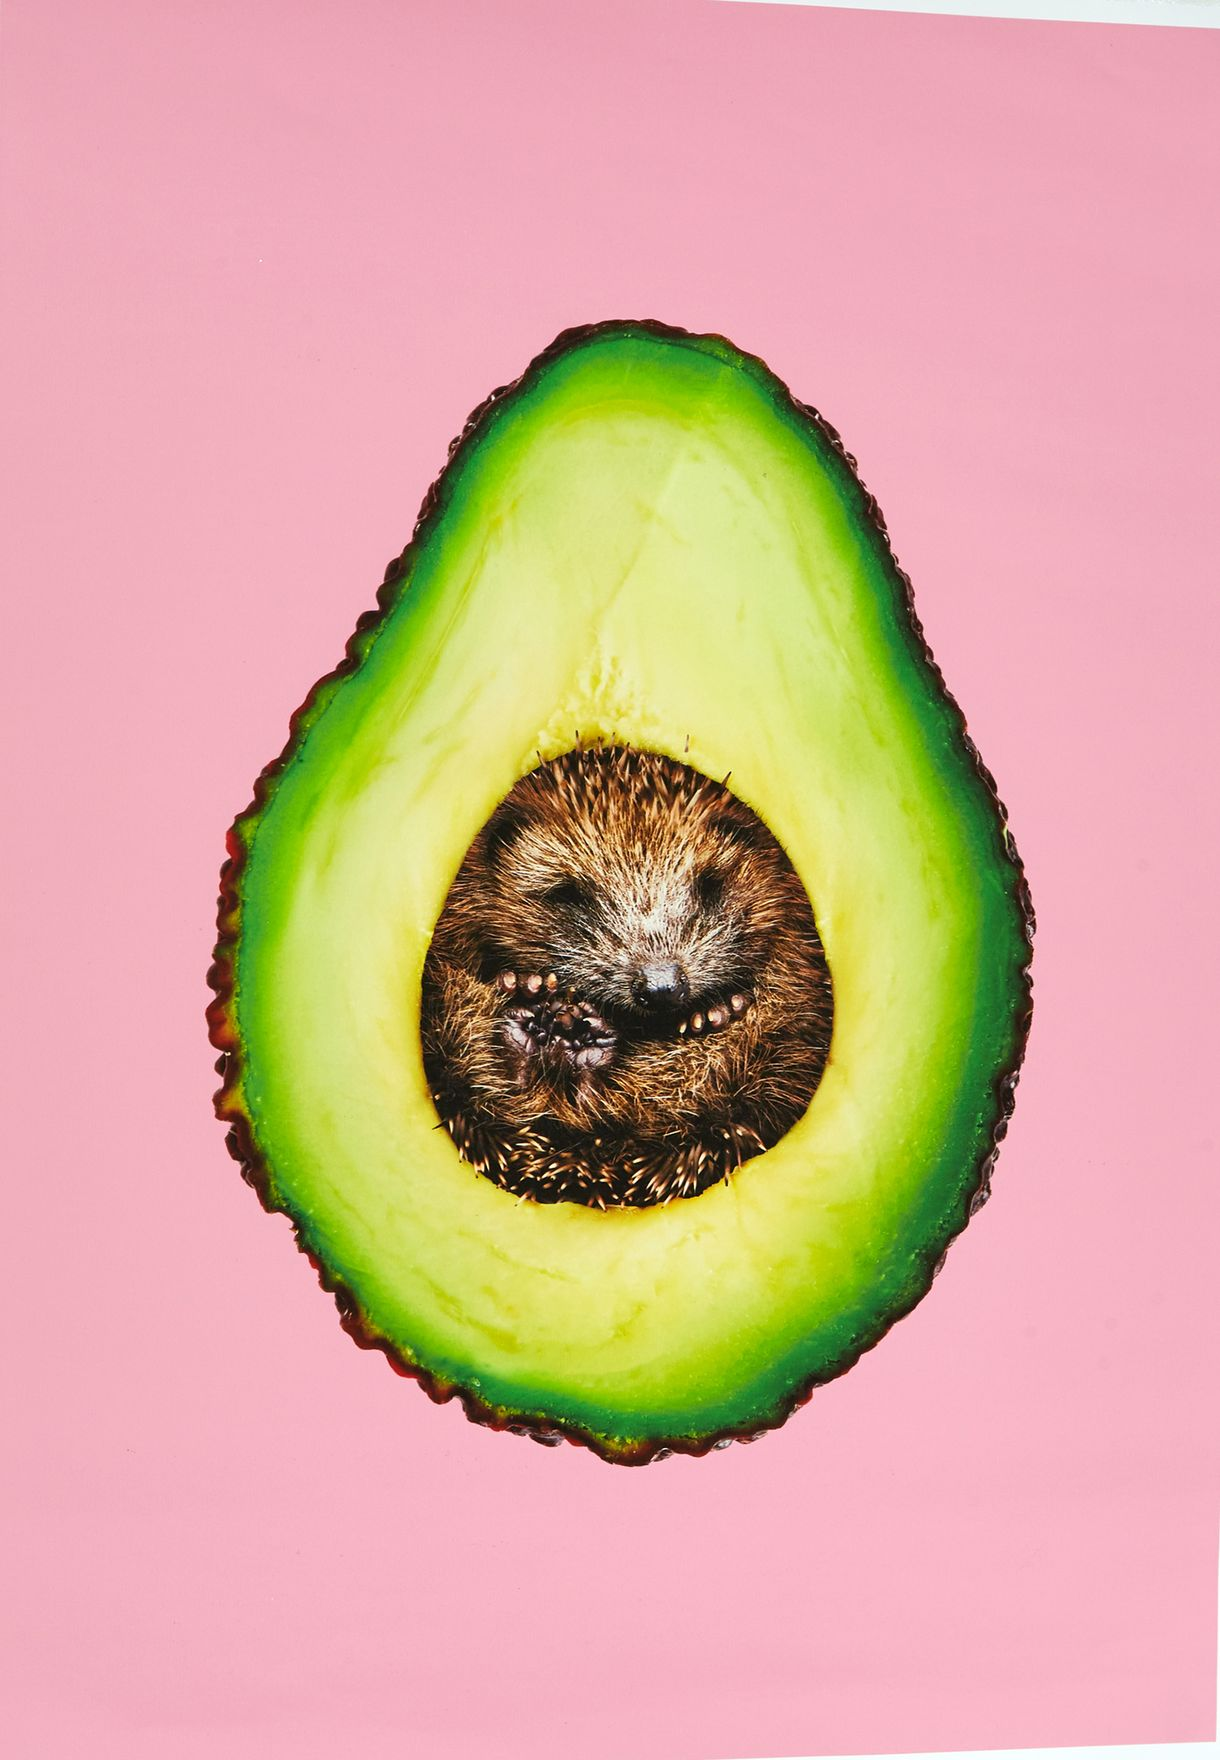 Avocado Artwork 50x70cm